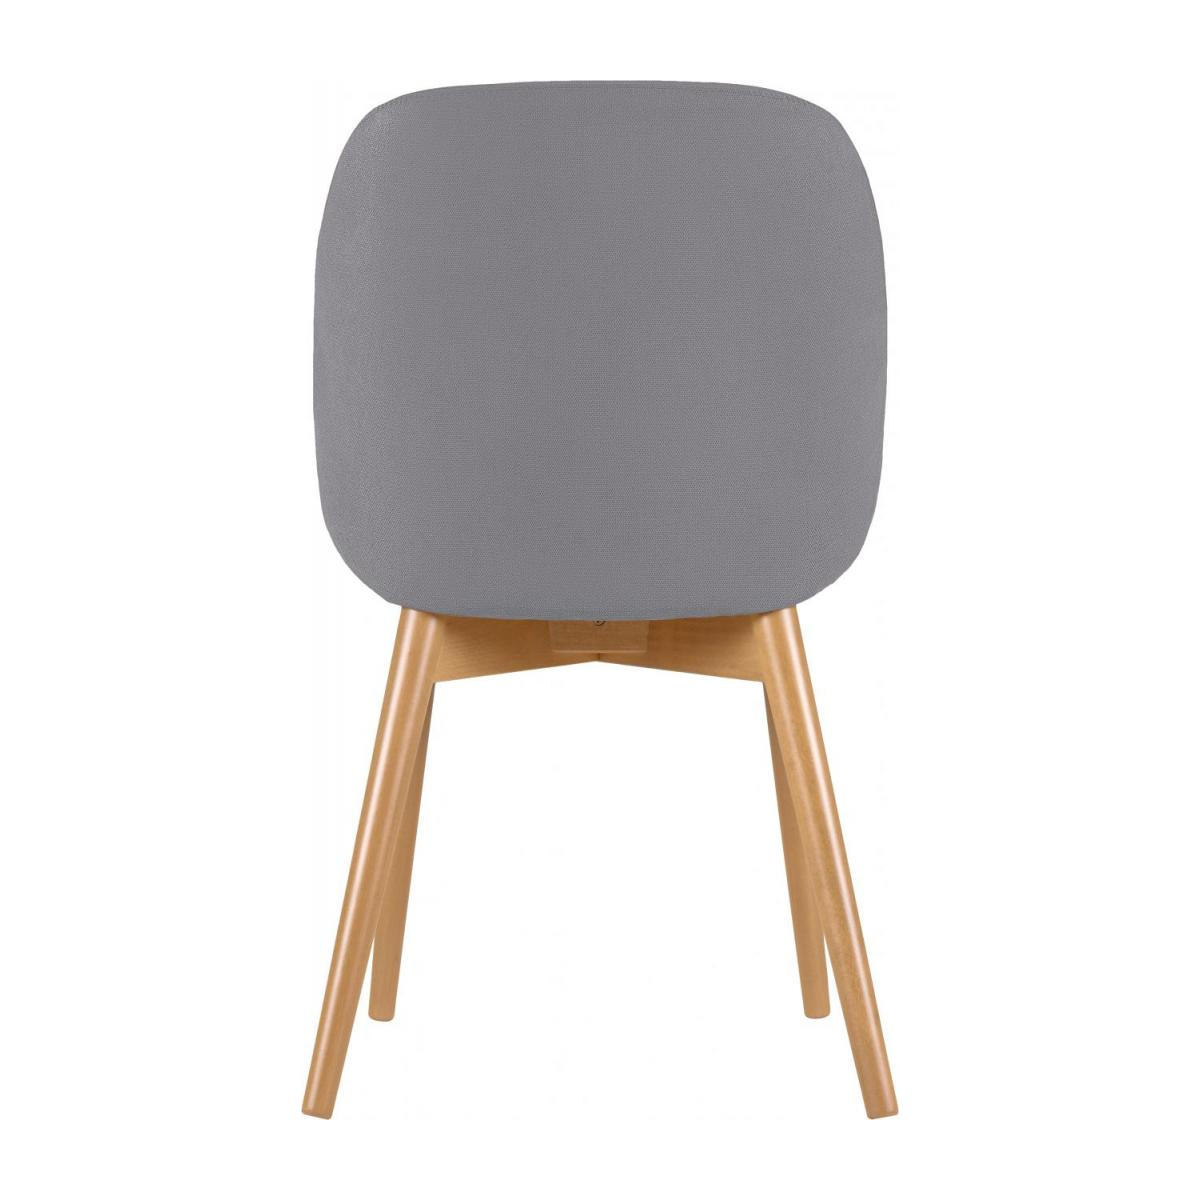 Chair with grey fabric cover and beech wood legs n°3